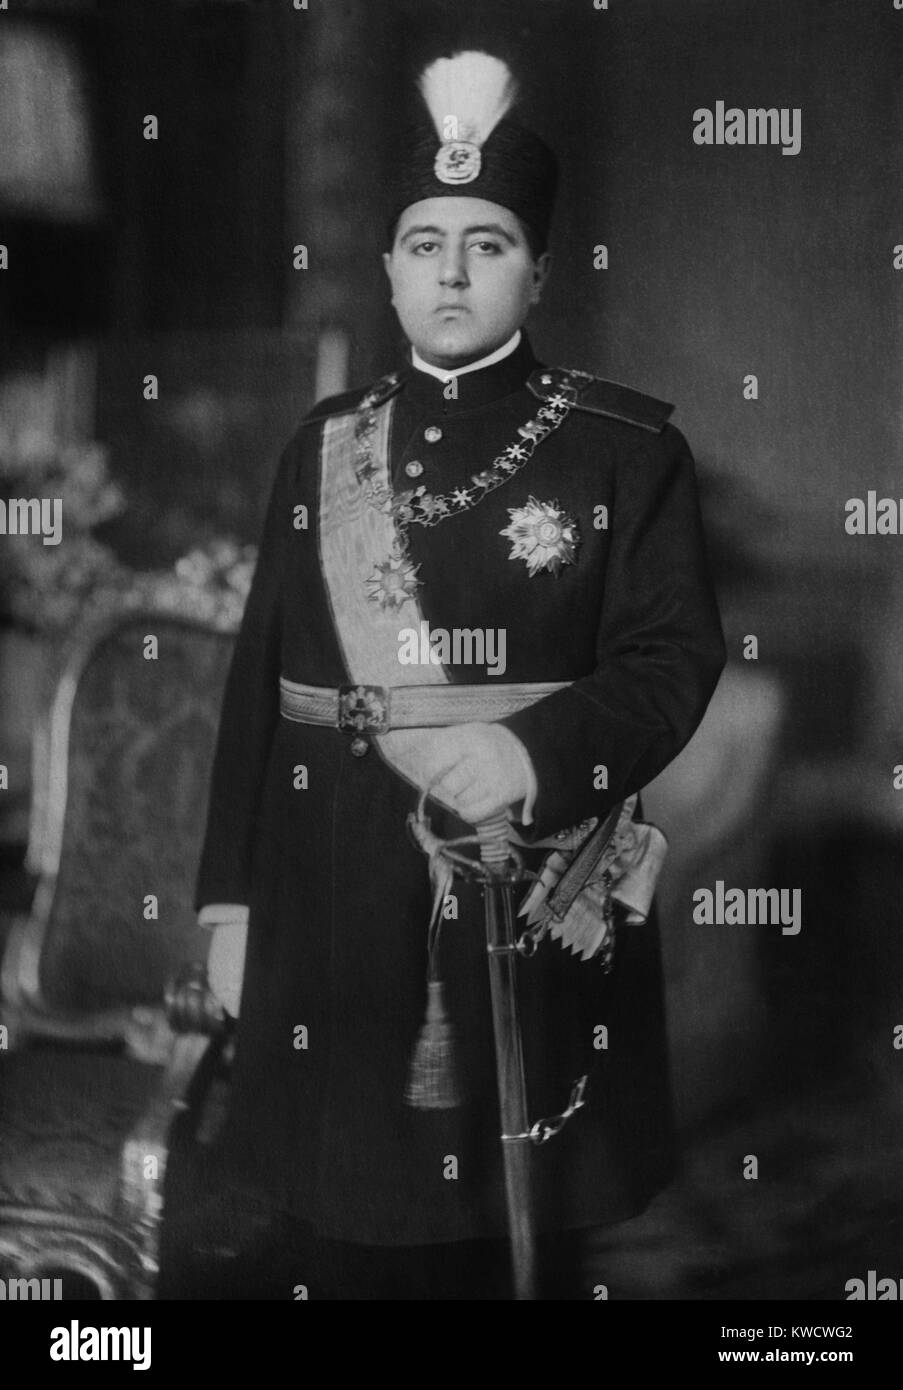 Ahmad Shah Qajar, the last Shah of the Qajar Dynasty that ruled Iran from 1796 to 1925 (BSLOC_2017_1_118) - Stock Image